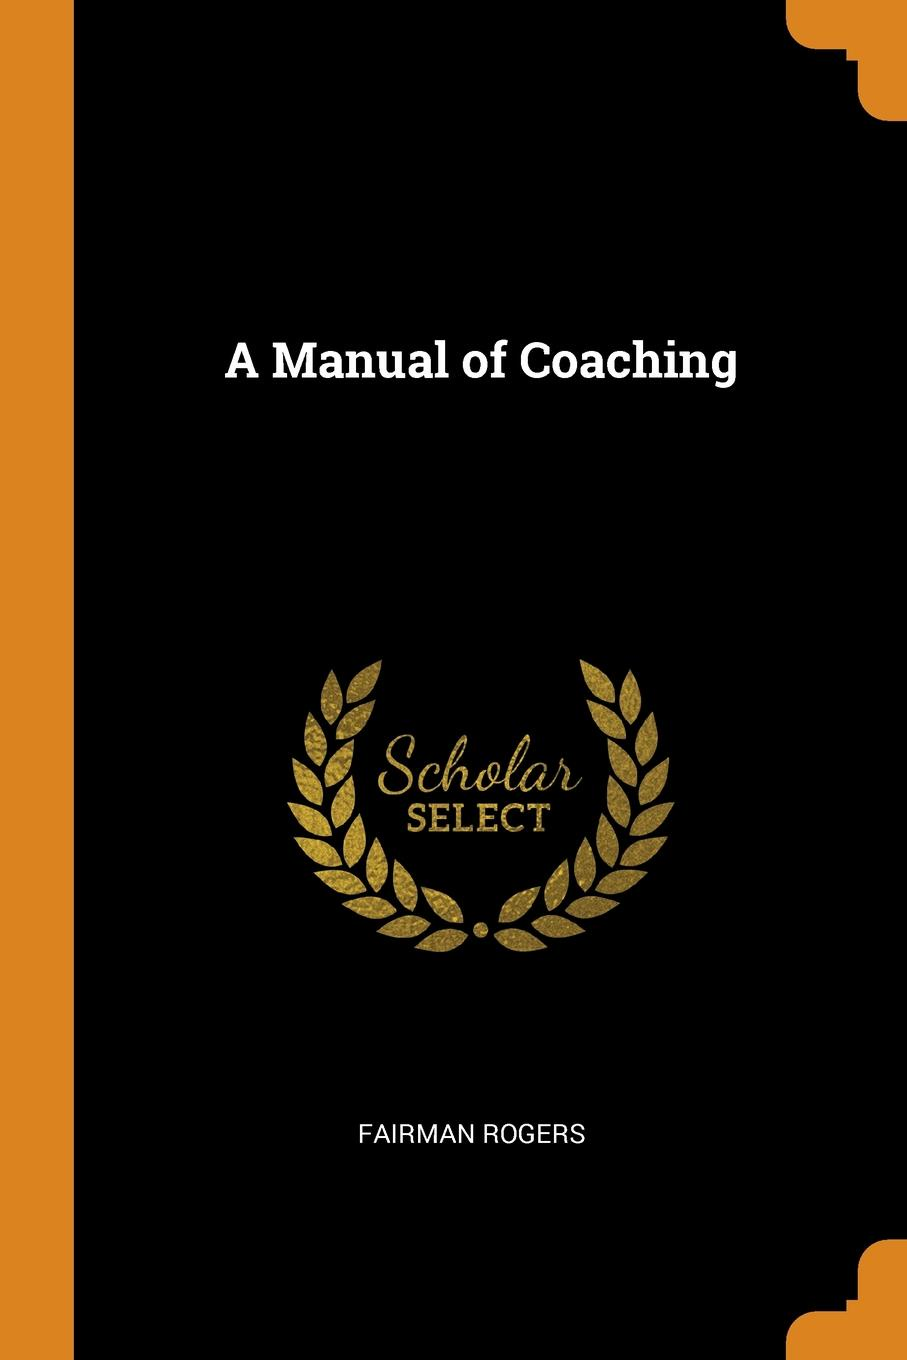 A Manual of Coaching. Fairman Rogers